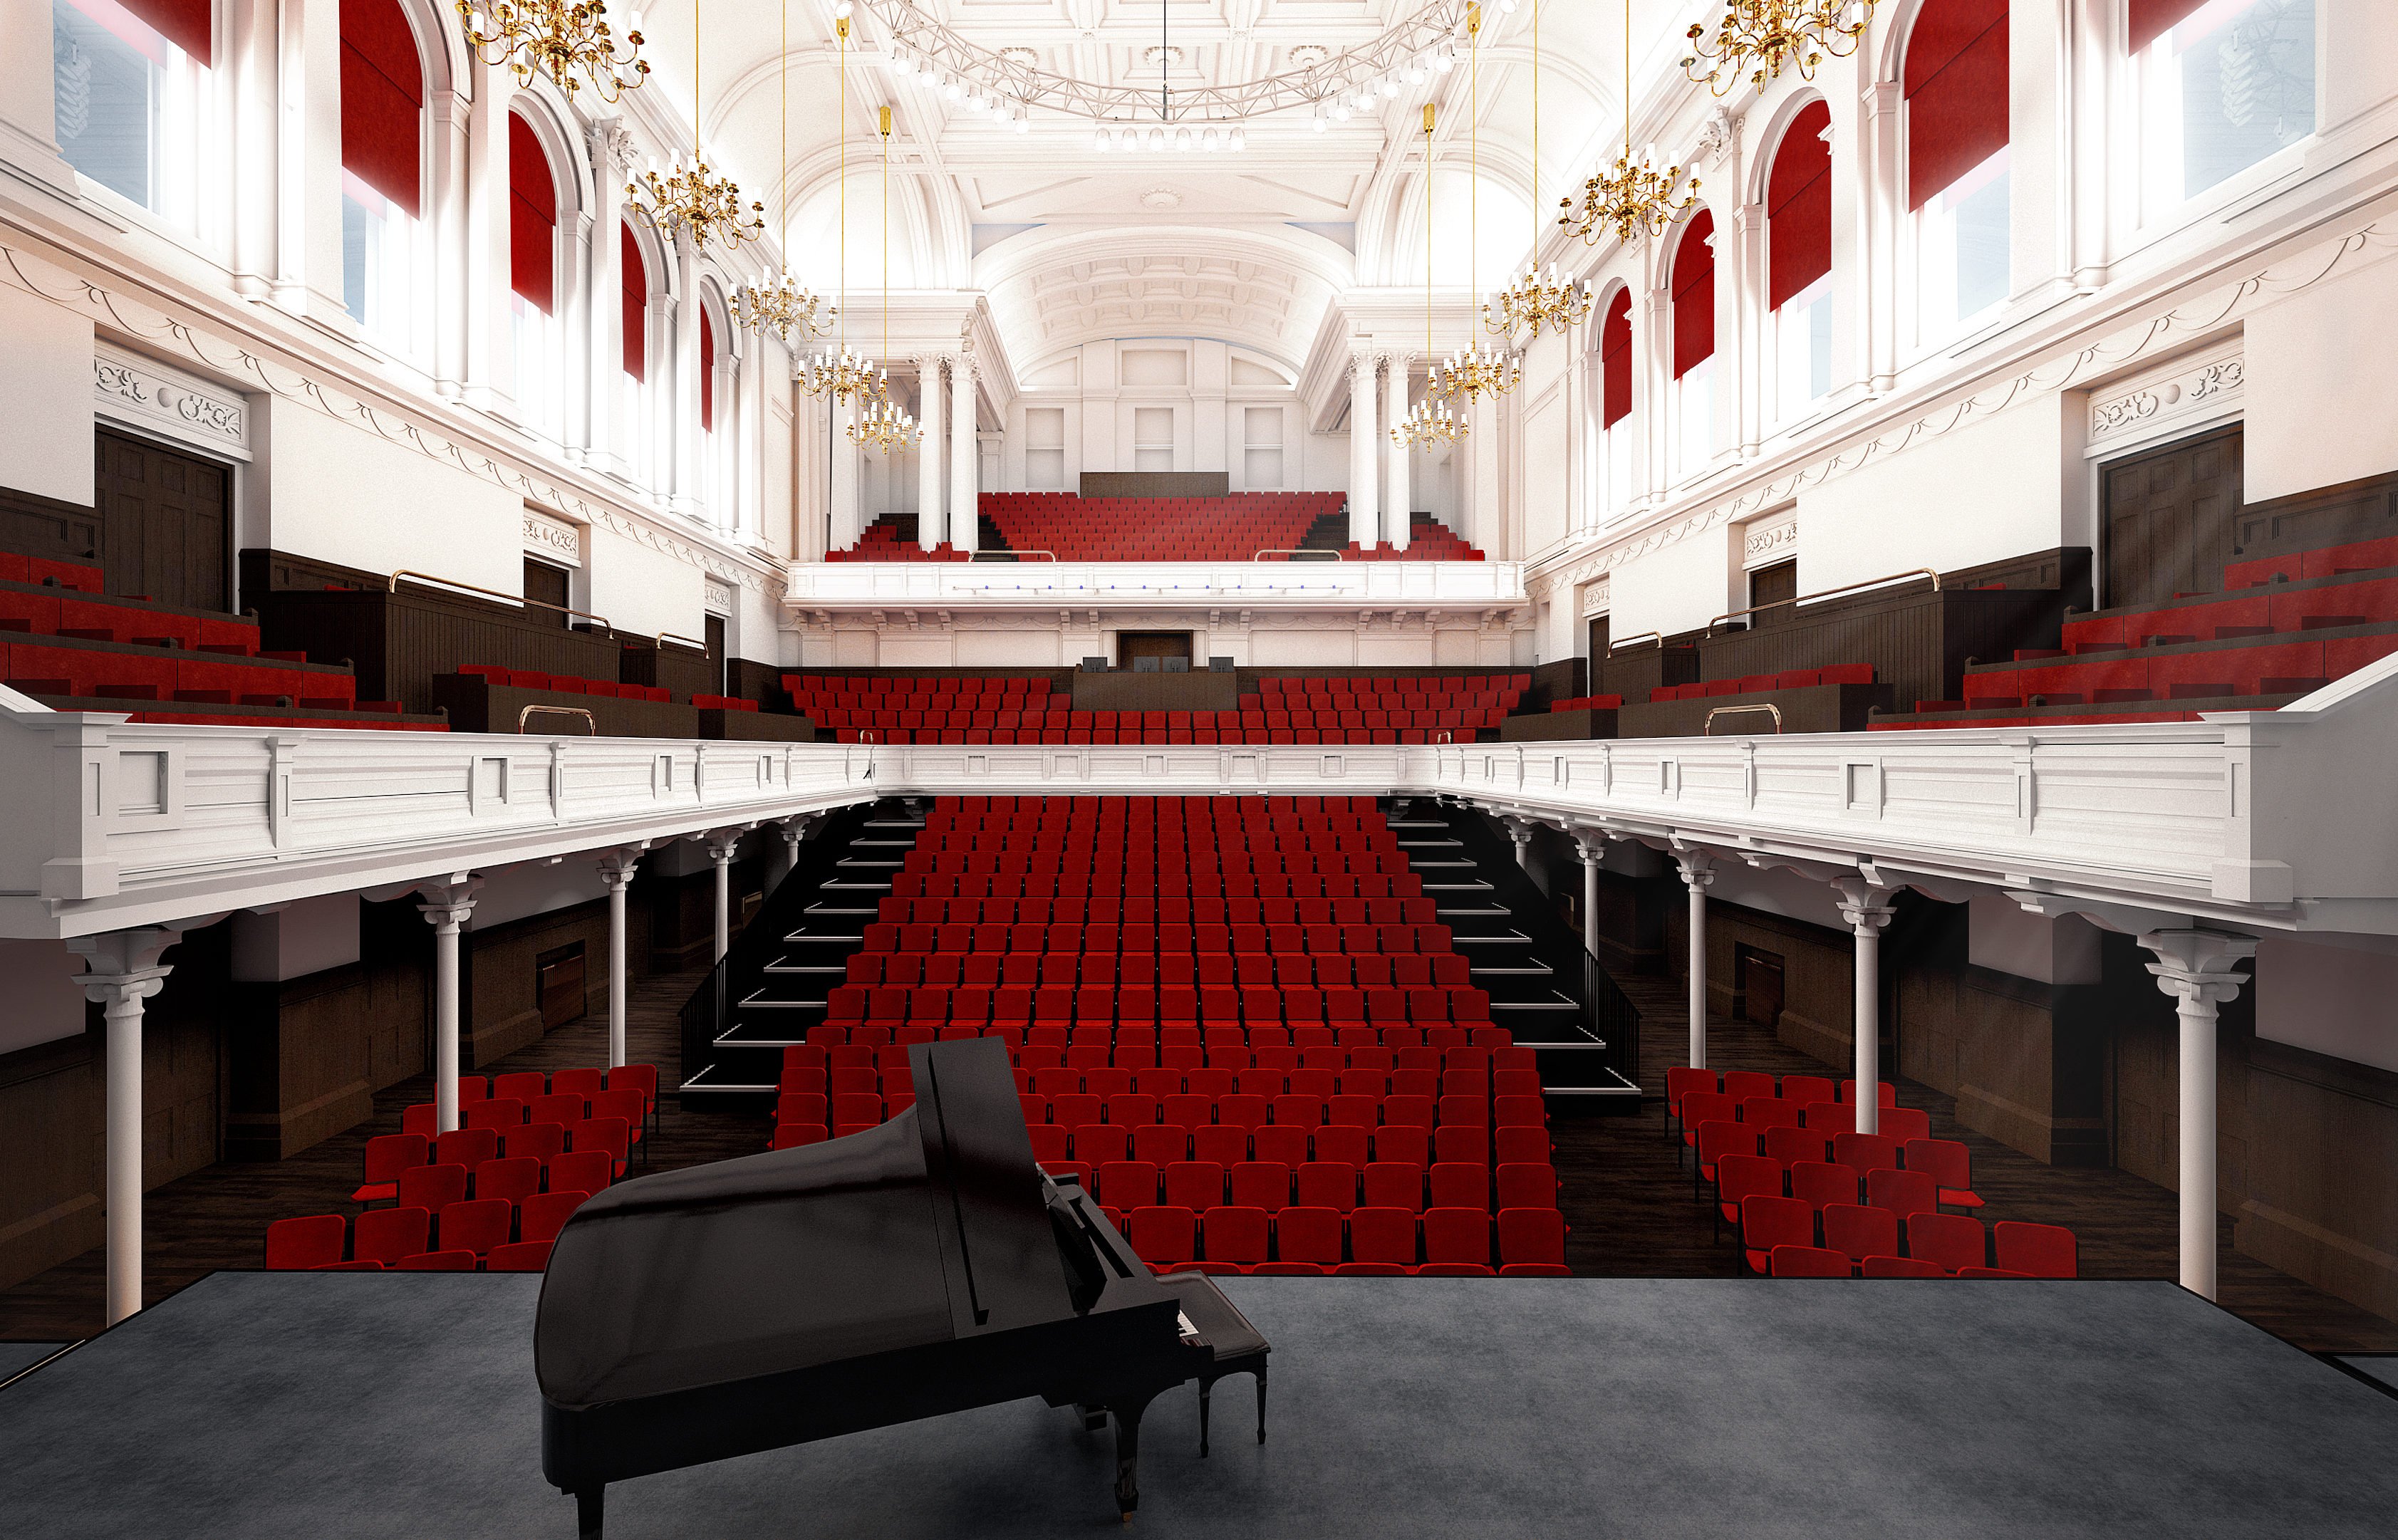 The vision for the new town hall interior (Renfrewshire Council)